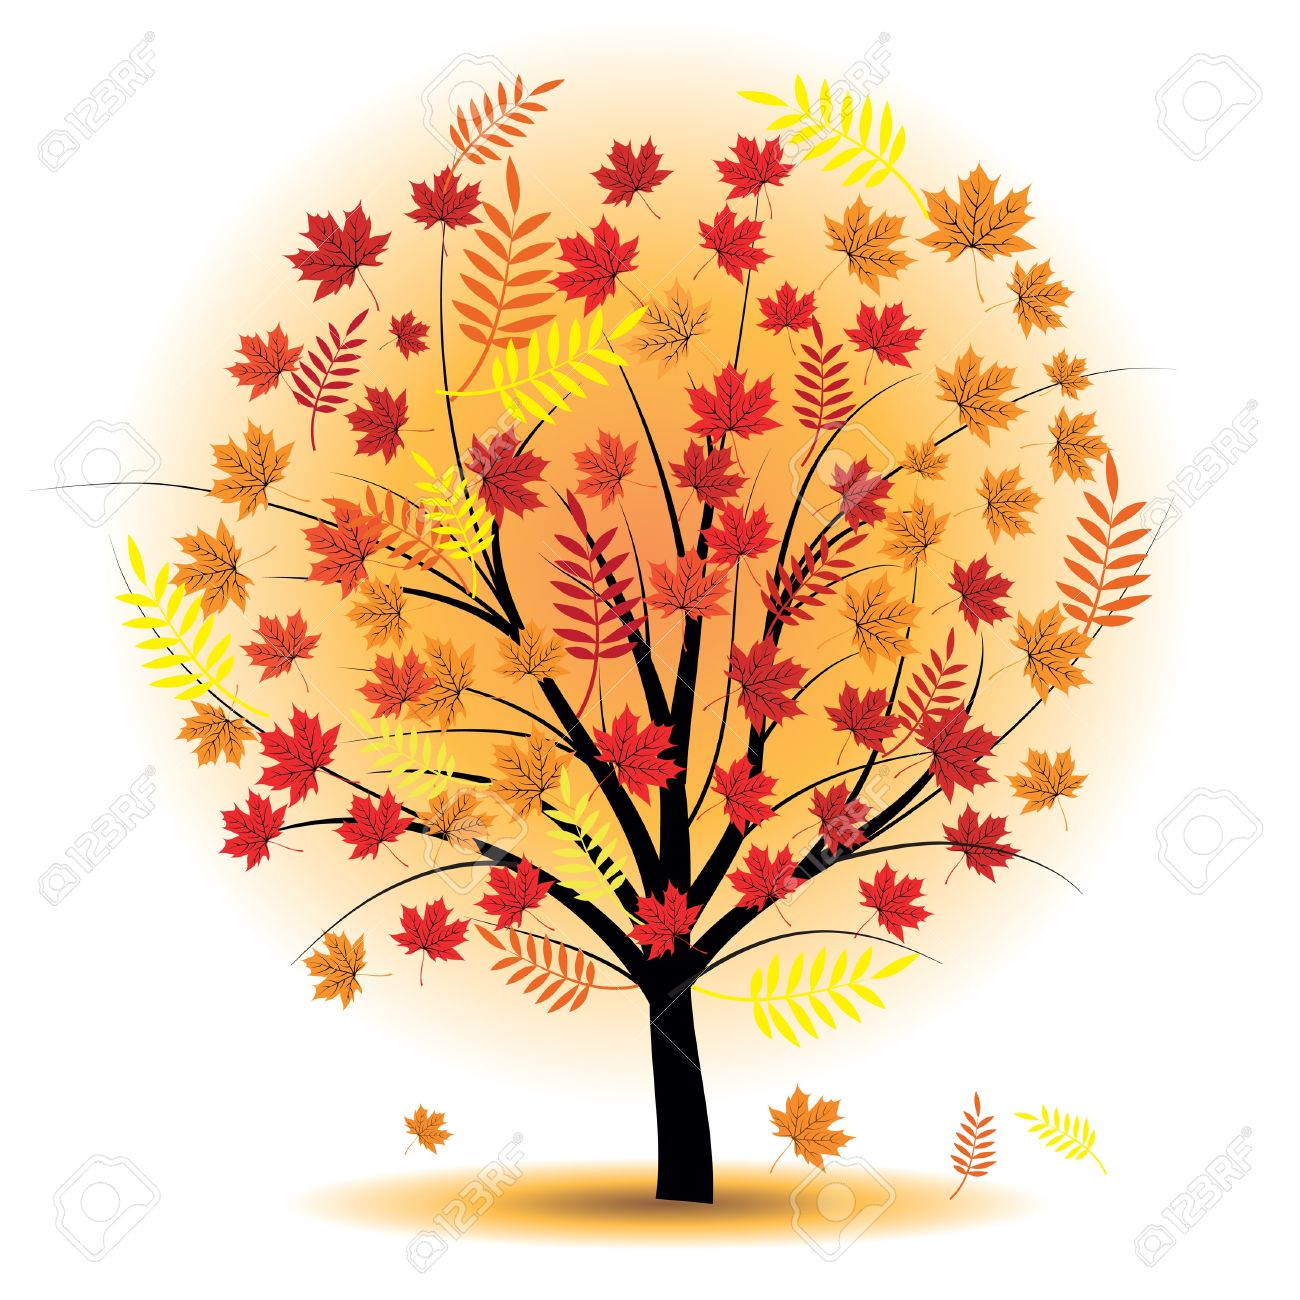 10014604 Beautiful autumn tree Design element Fall illustration Stock Photo